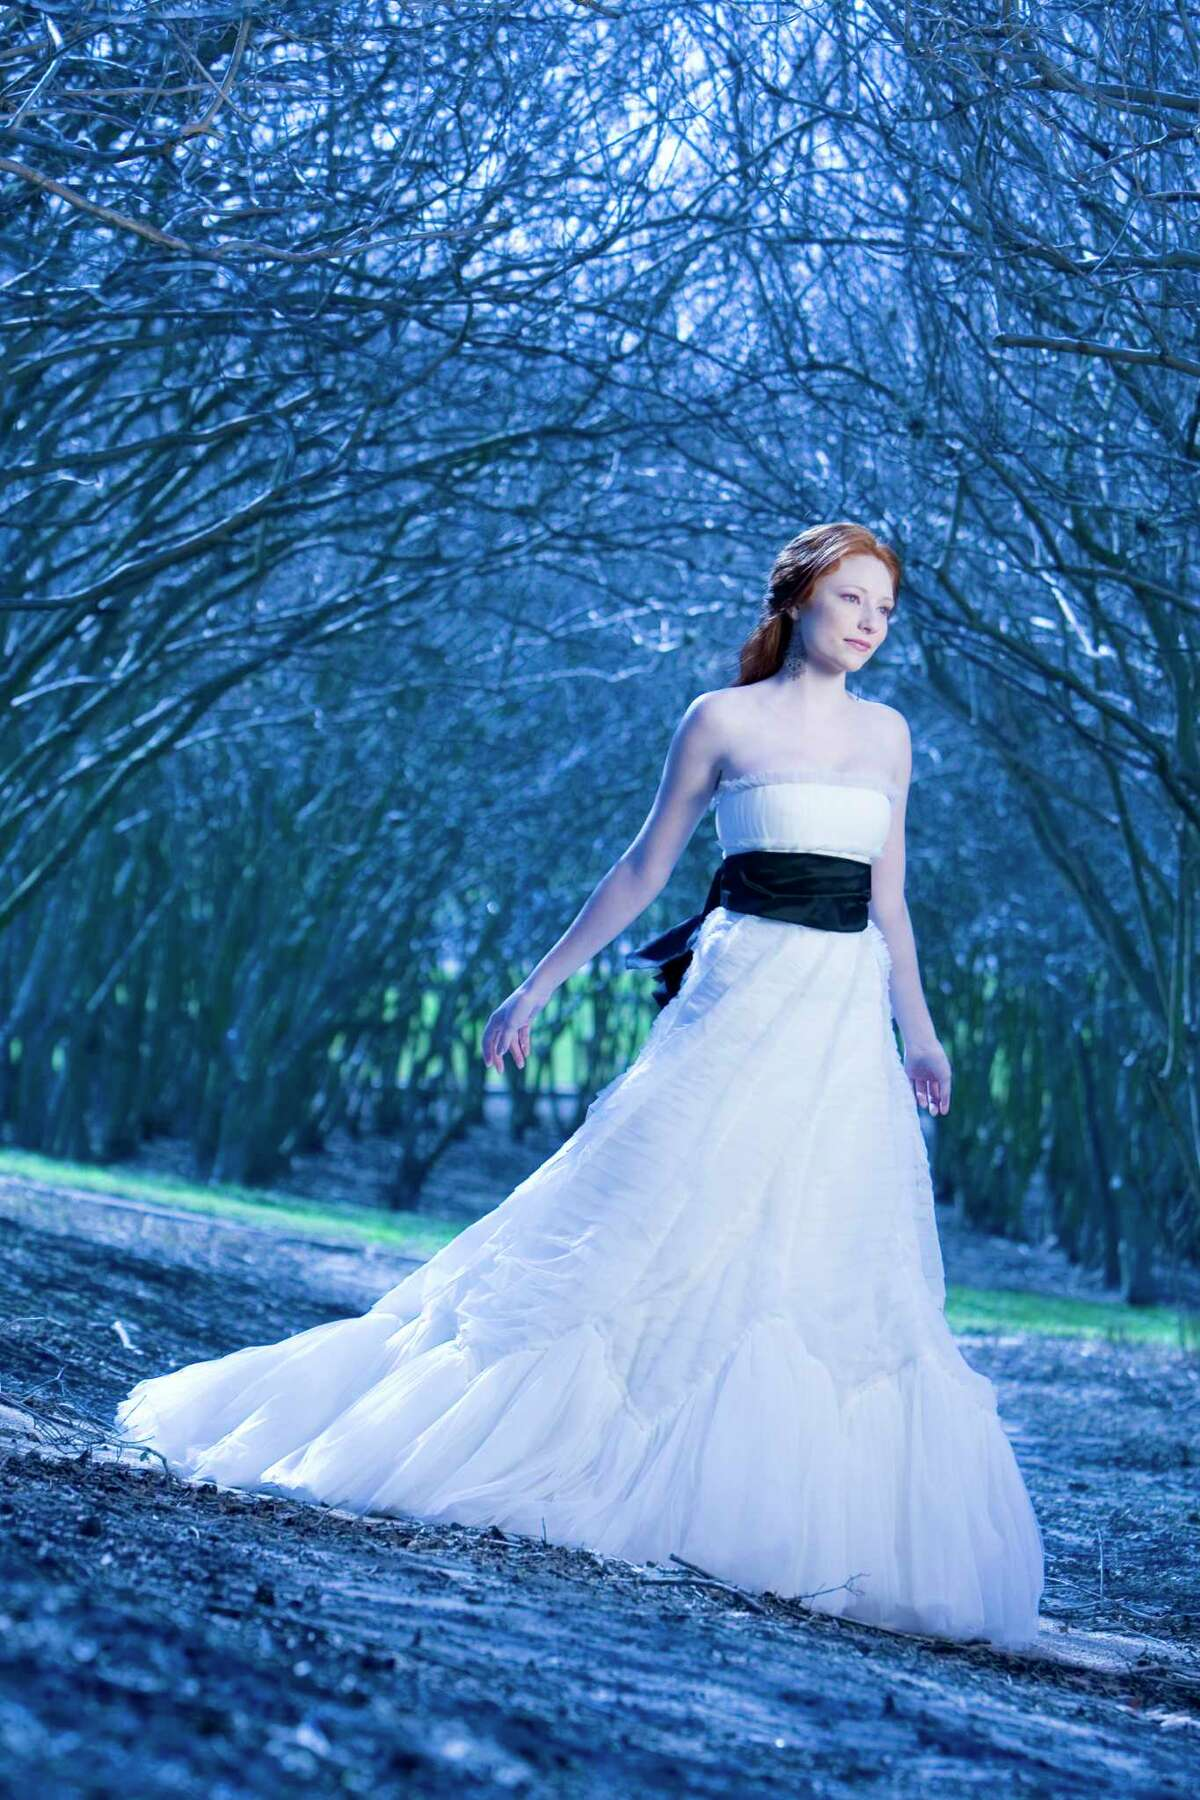 Chelsea McMahon models for a past Chronicle fashion shoot at the blue trees at the Waugh-Memorial cloverleaf.